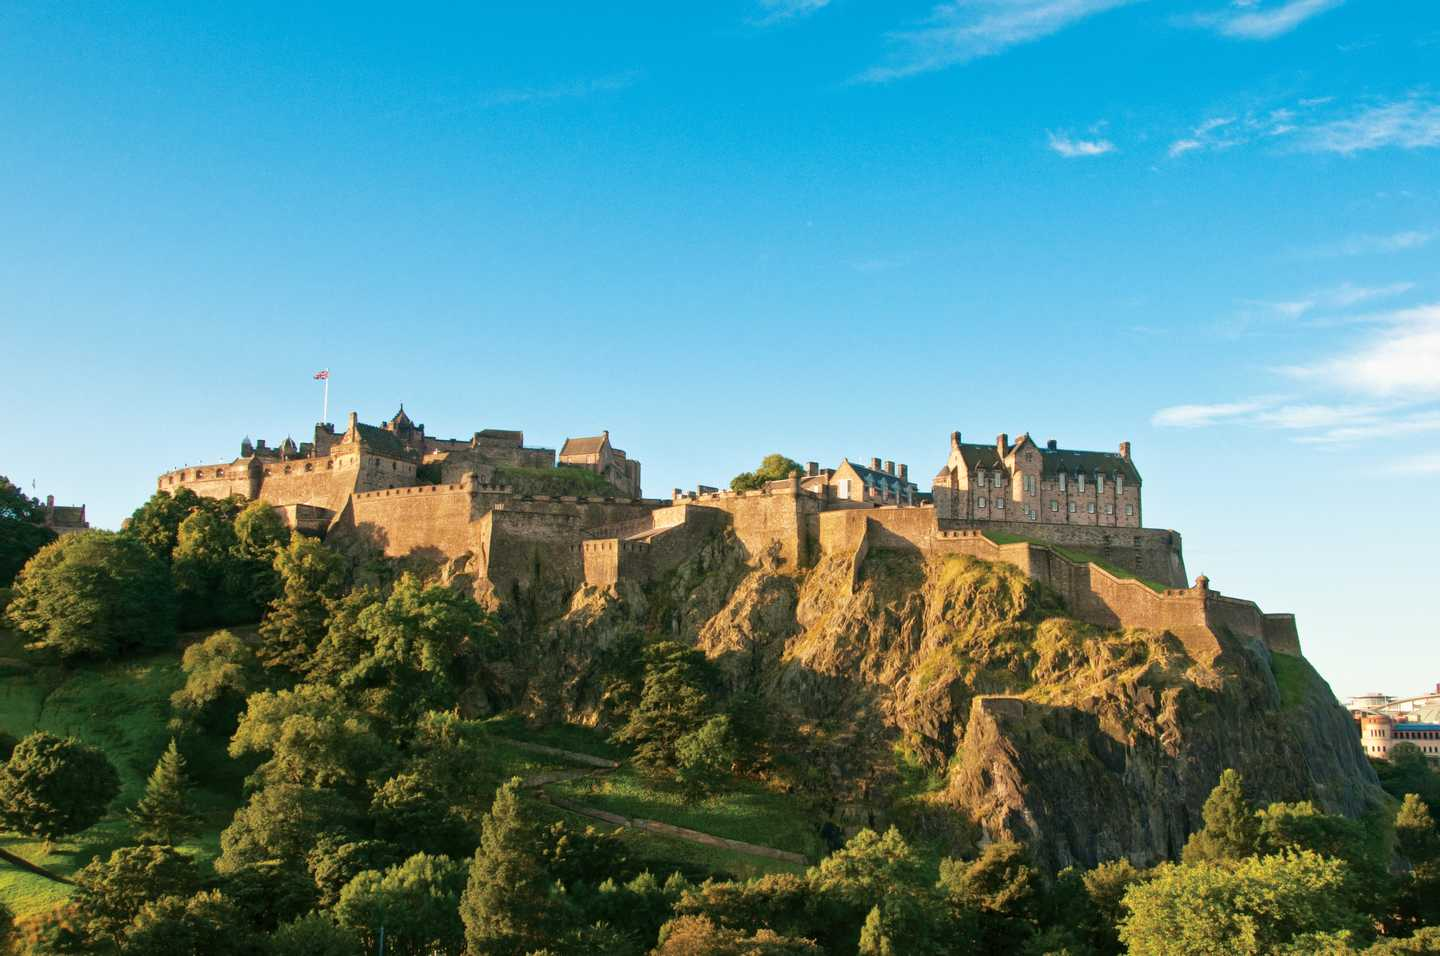 View of Edinburgh Castle on the Castle Rock